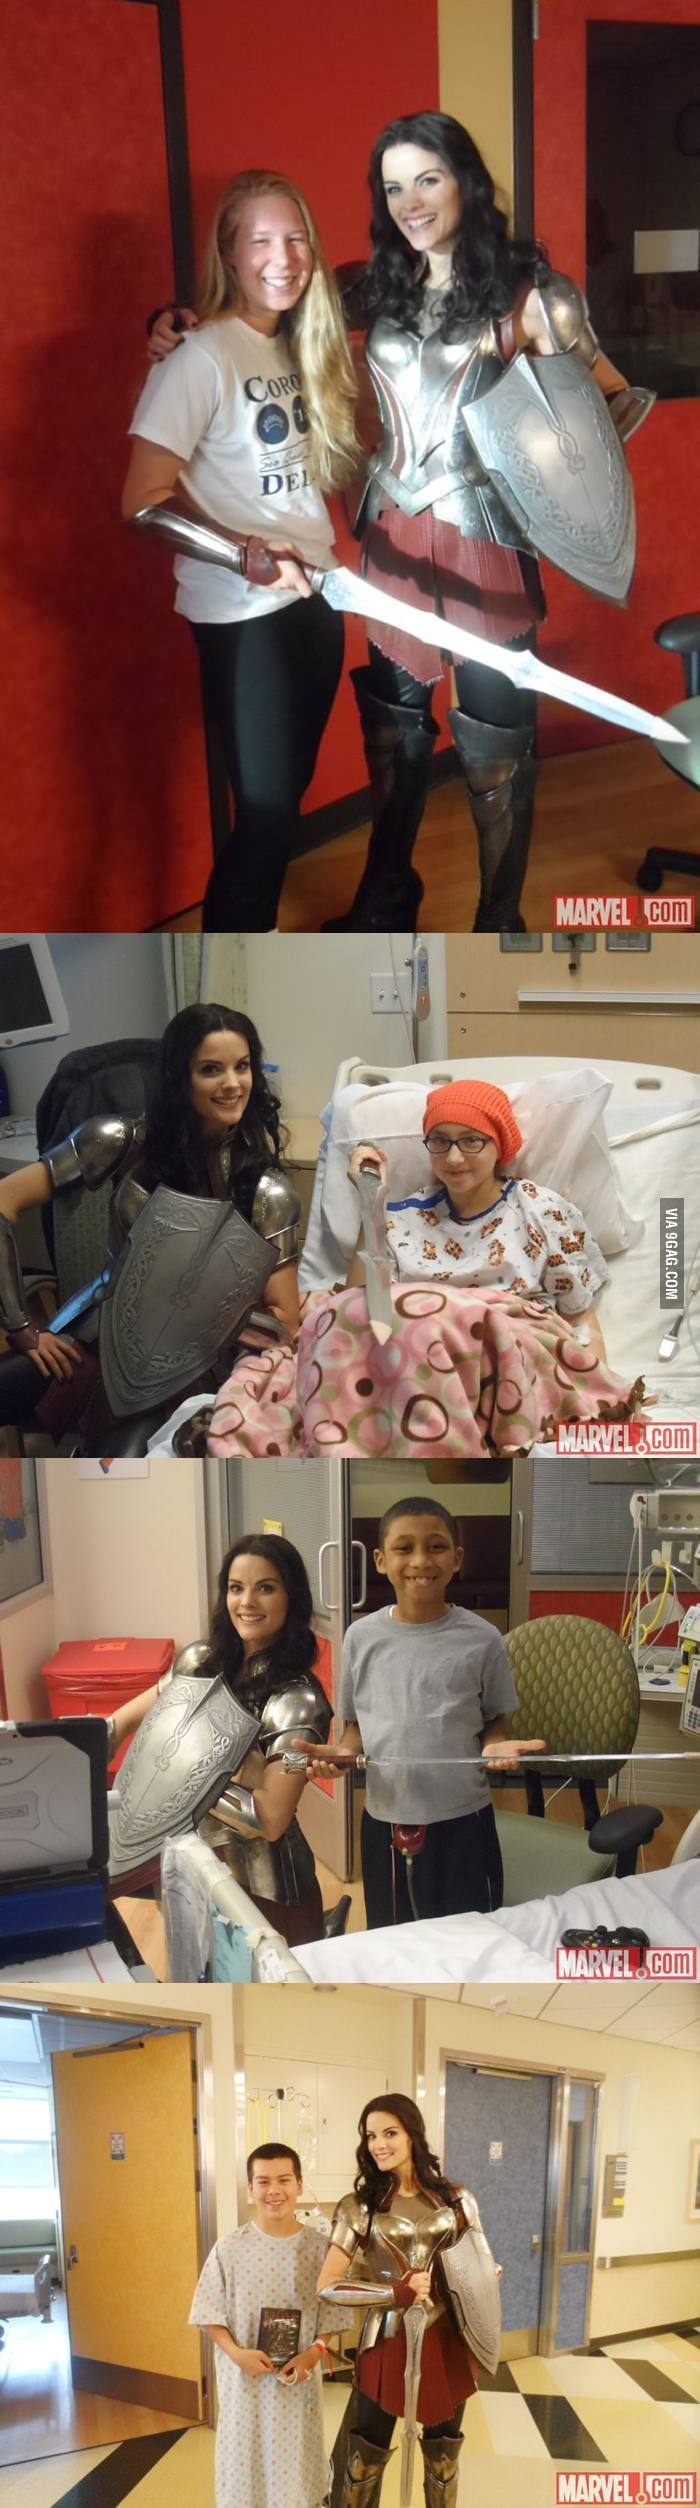 Best CHILDRENS HOSPITAL Images On Pinterest Children S - Artist visits sick children in hospital gives them amazing tattoos to cheer them up